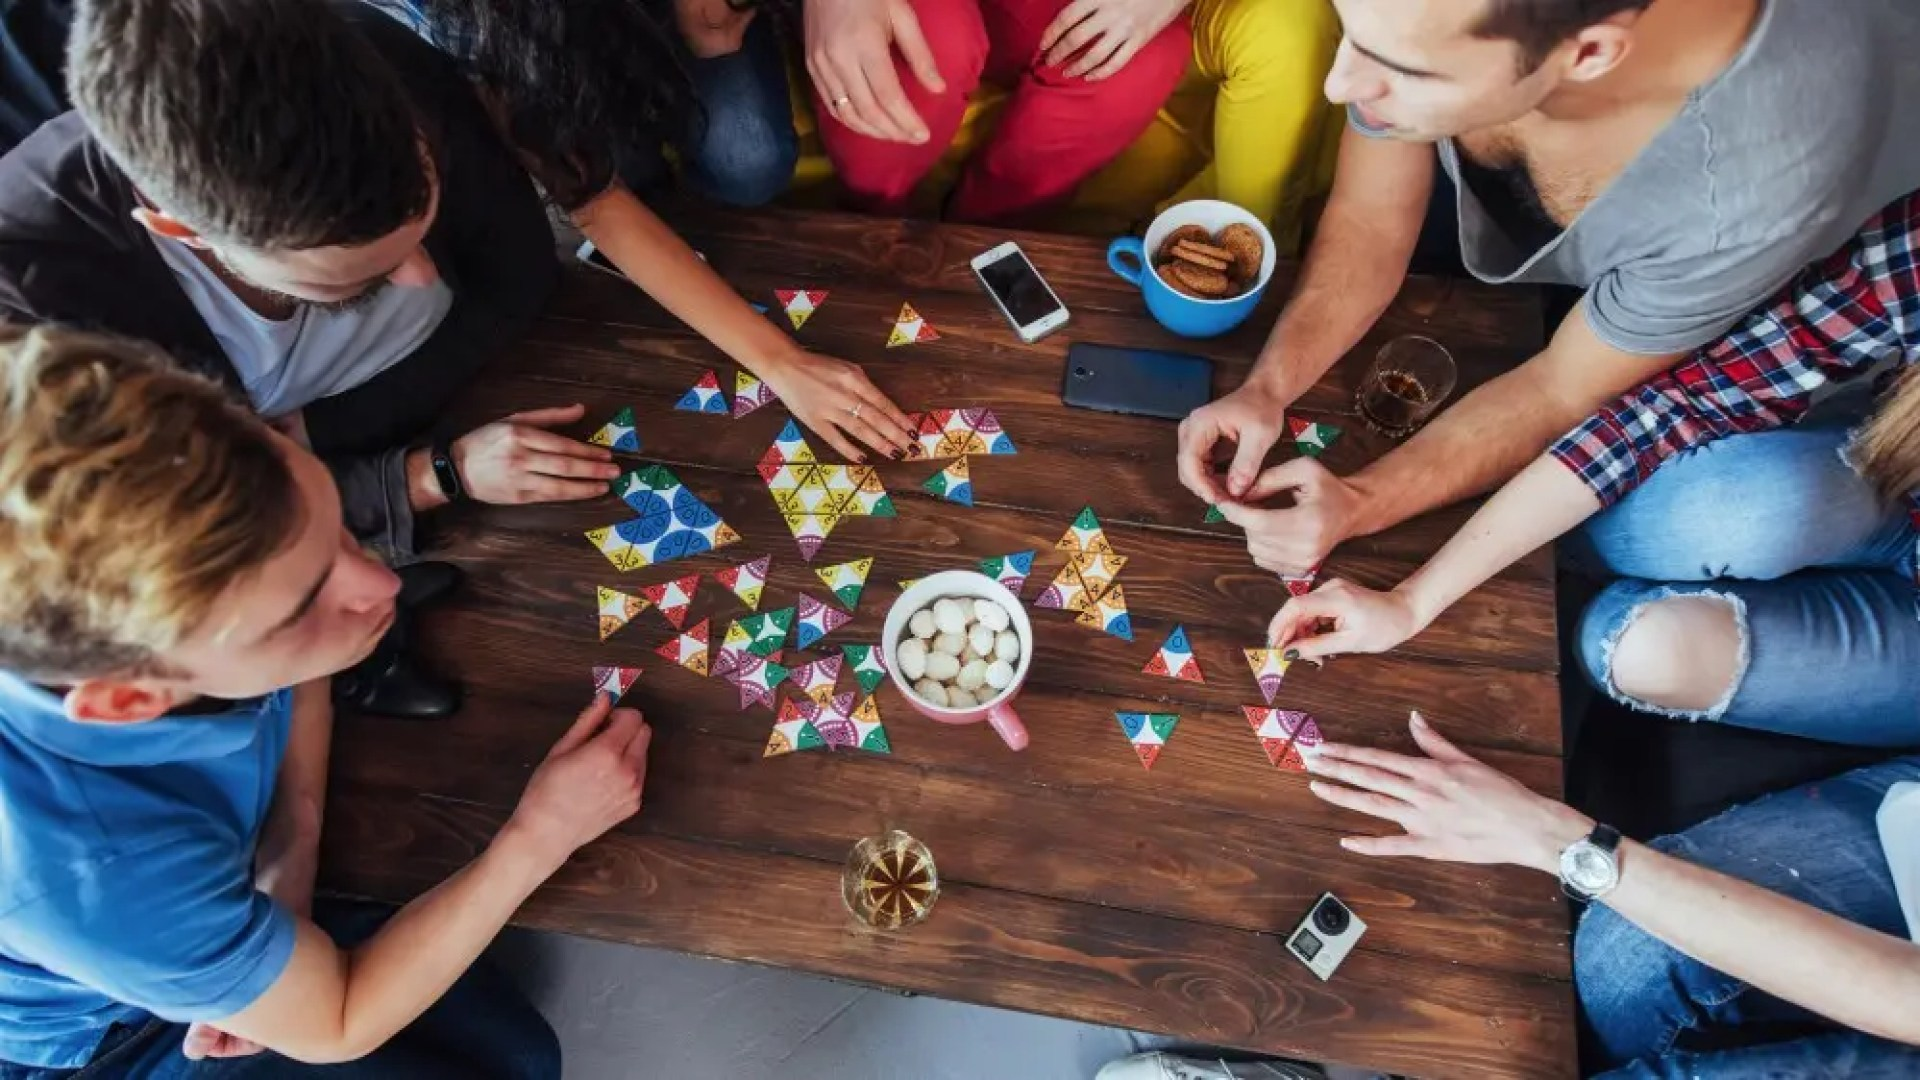 Top view of creative photo of friends sitting at wooden table playing a board game with snacks and drinks